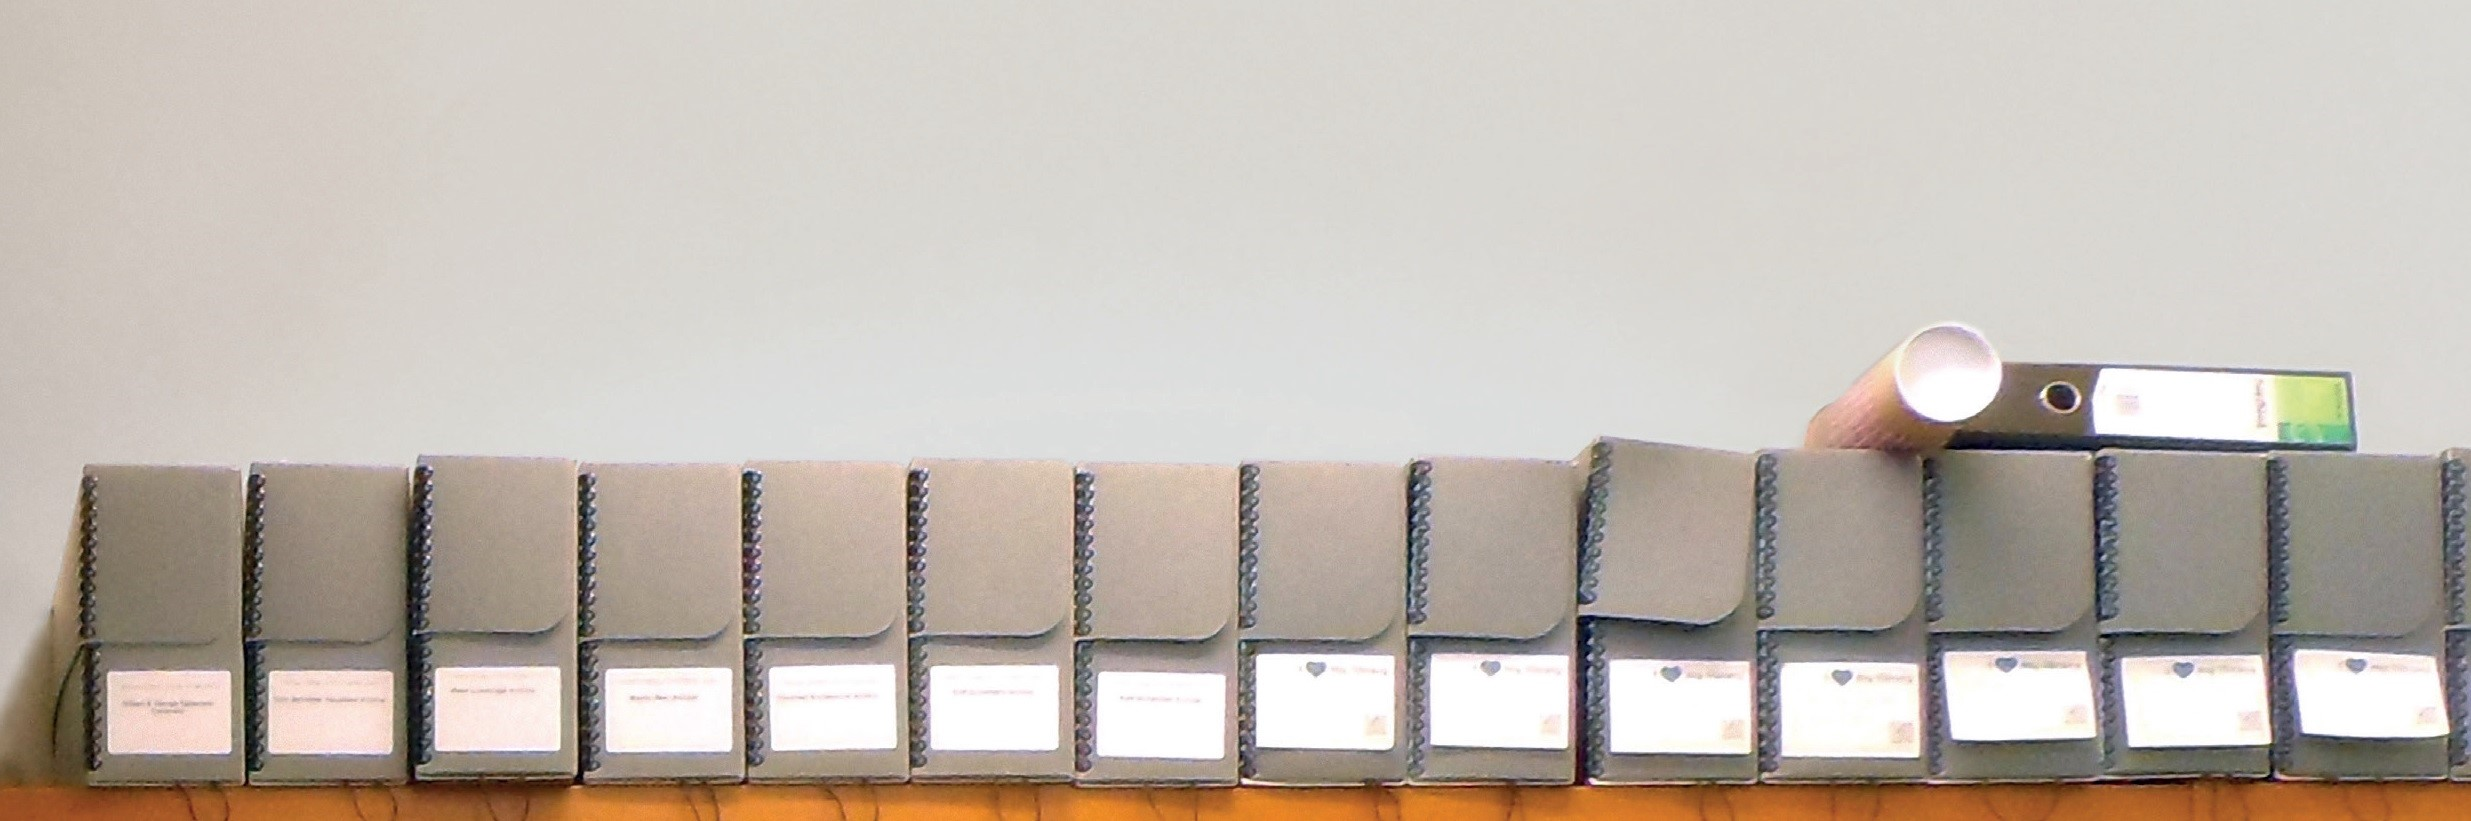 Shelf of grey archive boxes